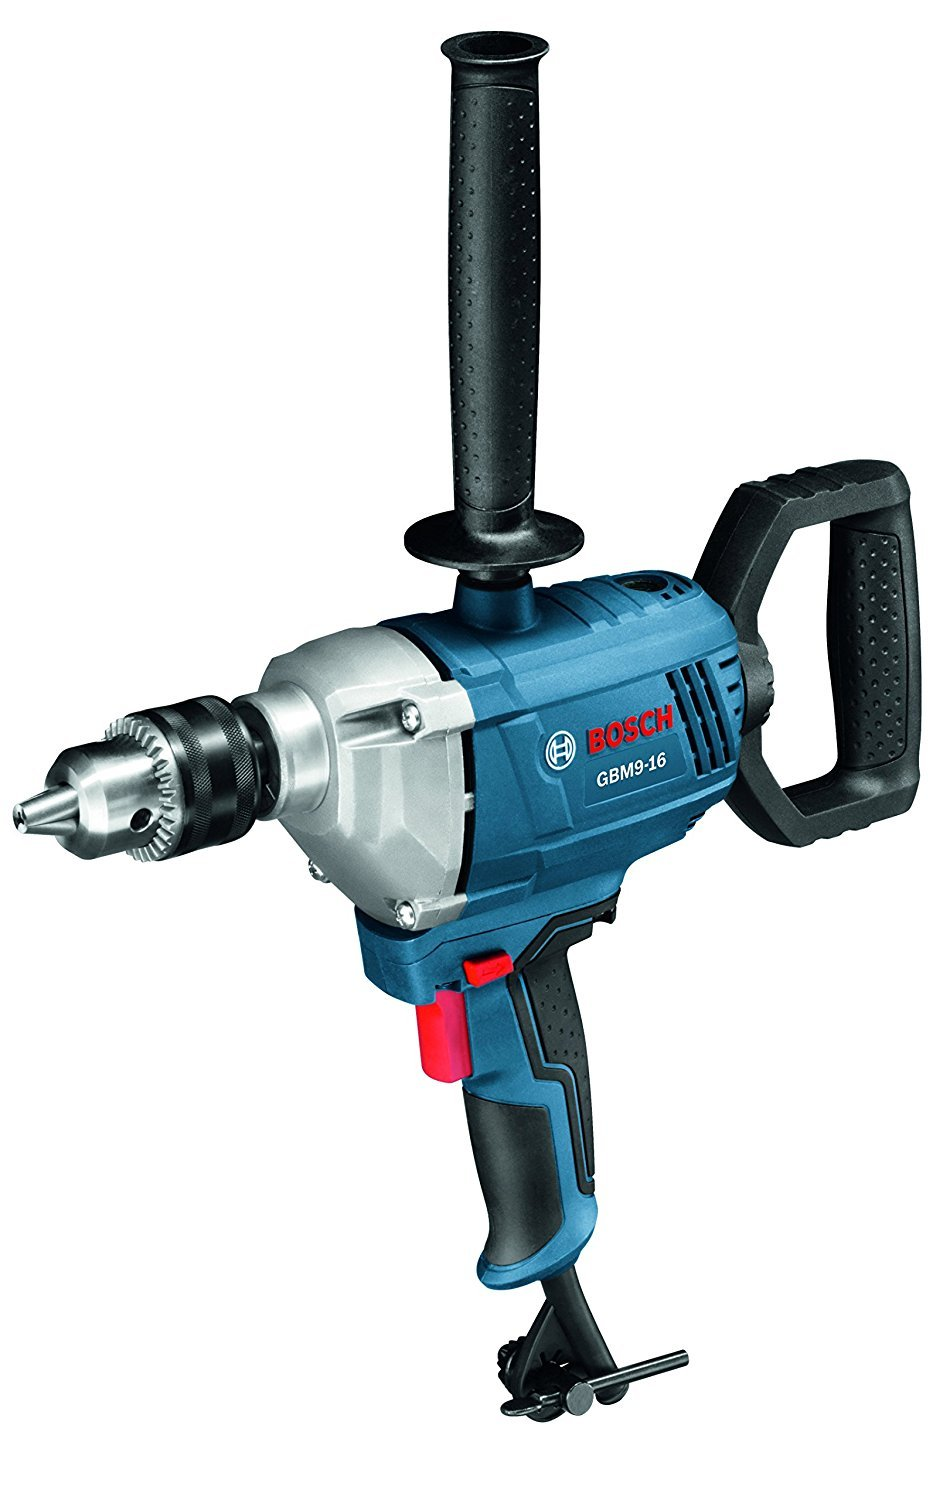 Best Heavy Duty Drill For Timber Framing - Timber Frame HQ